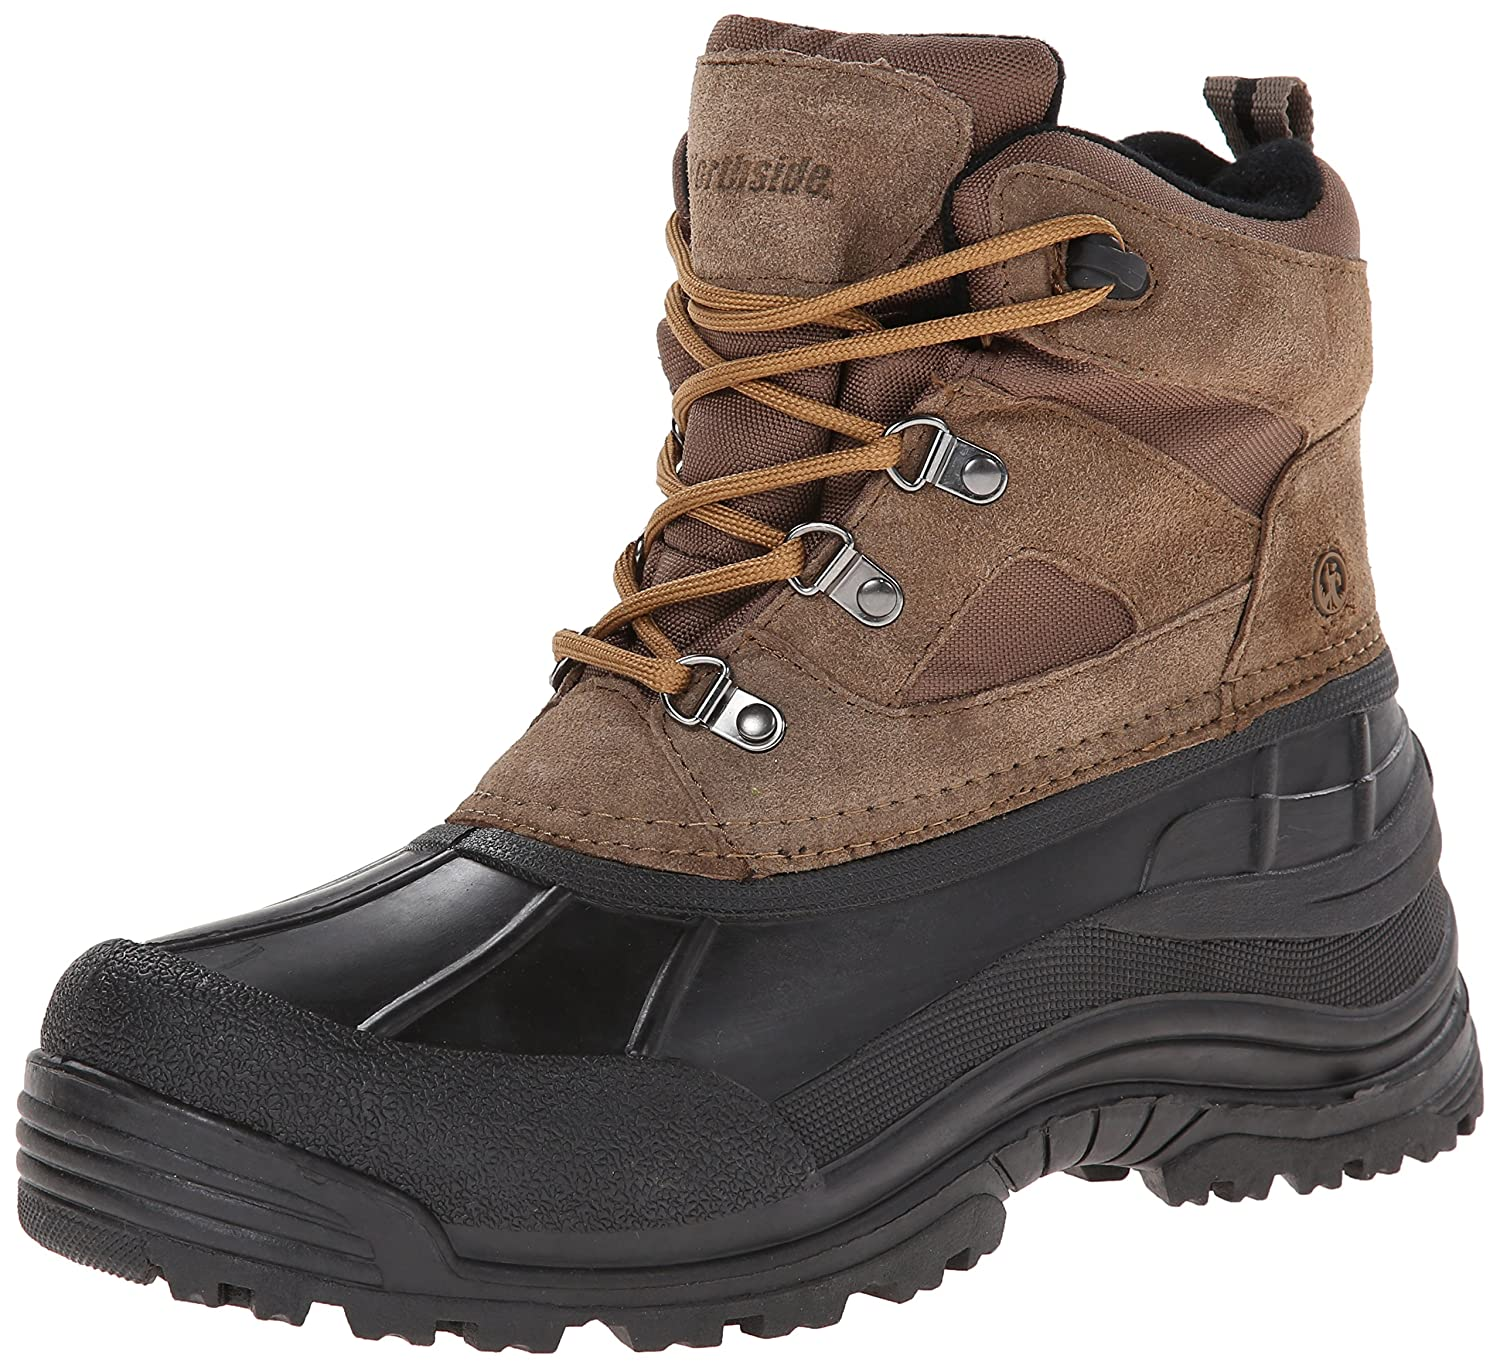 Northside Men's Tundra Lace-Up Cold-Weather Boot